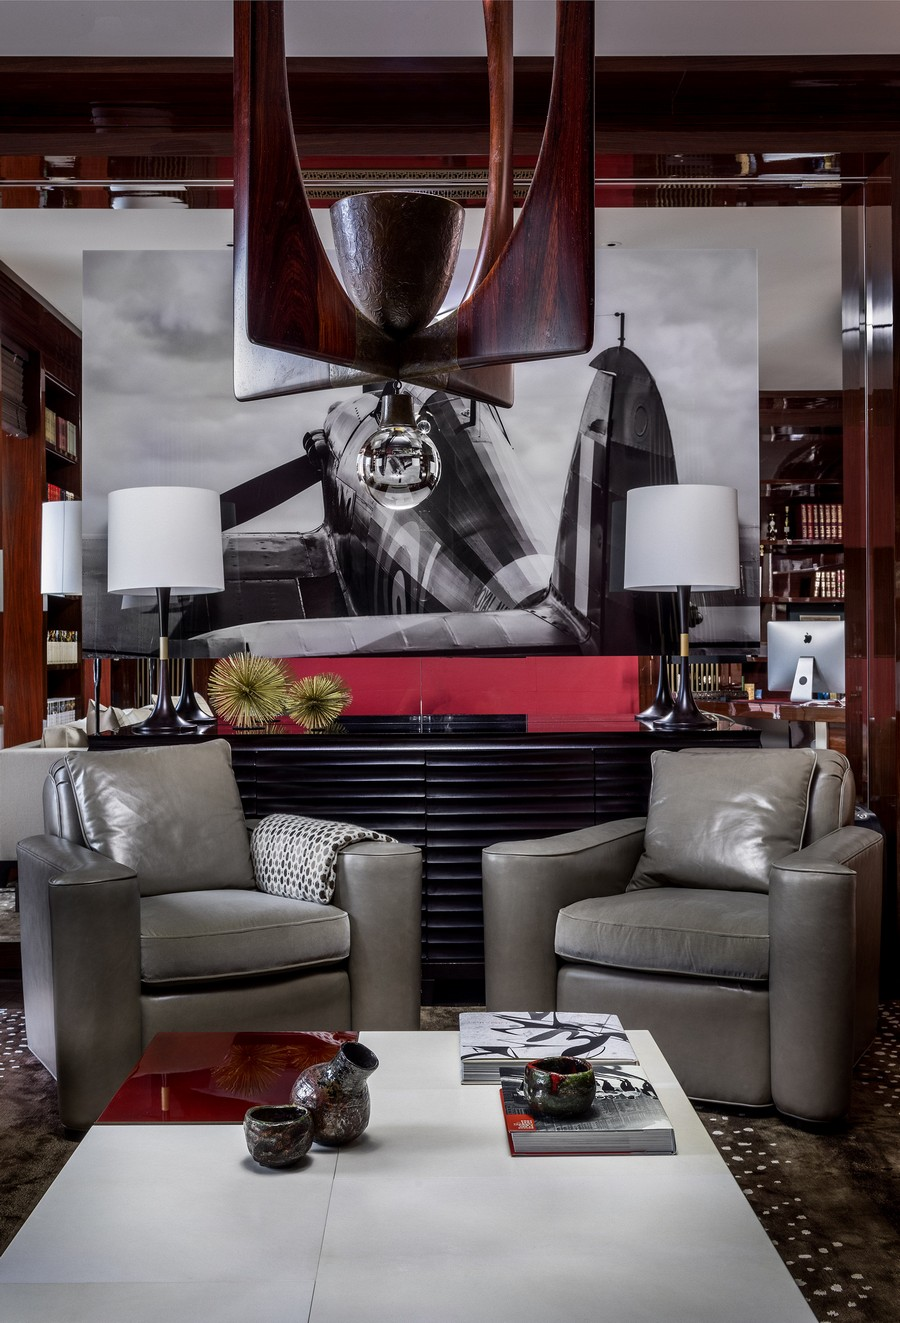 Charming Apartment in Moscow by Interior Designer Marina Filippova interior designer Charming Apartment in Moscow by Interior Designer Marina Filippova russian apartment inspiration6